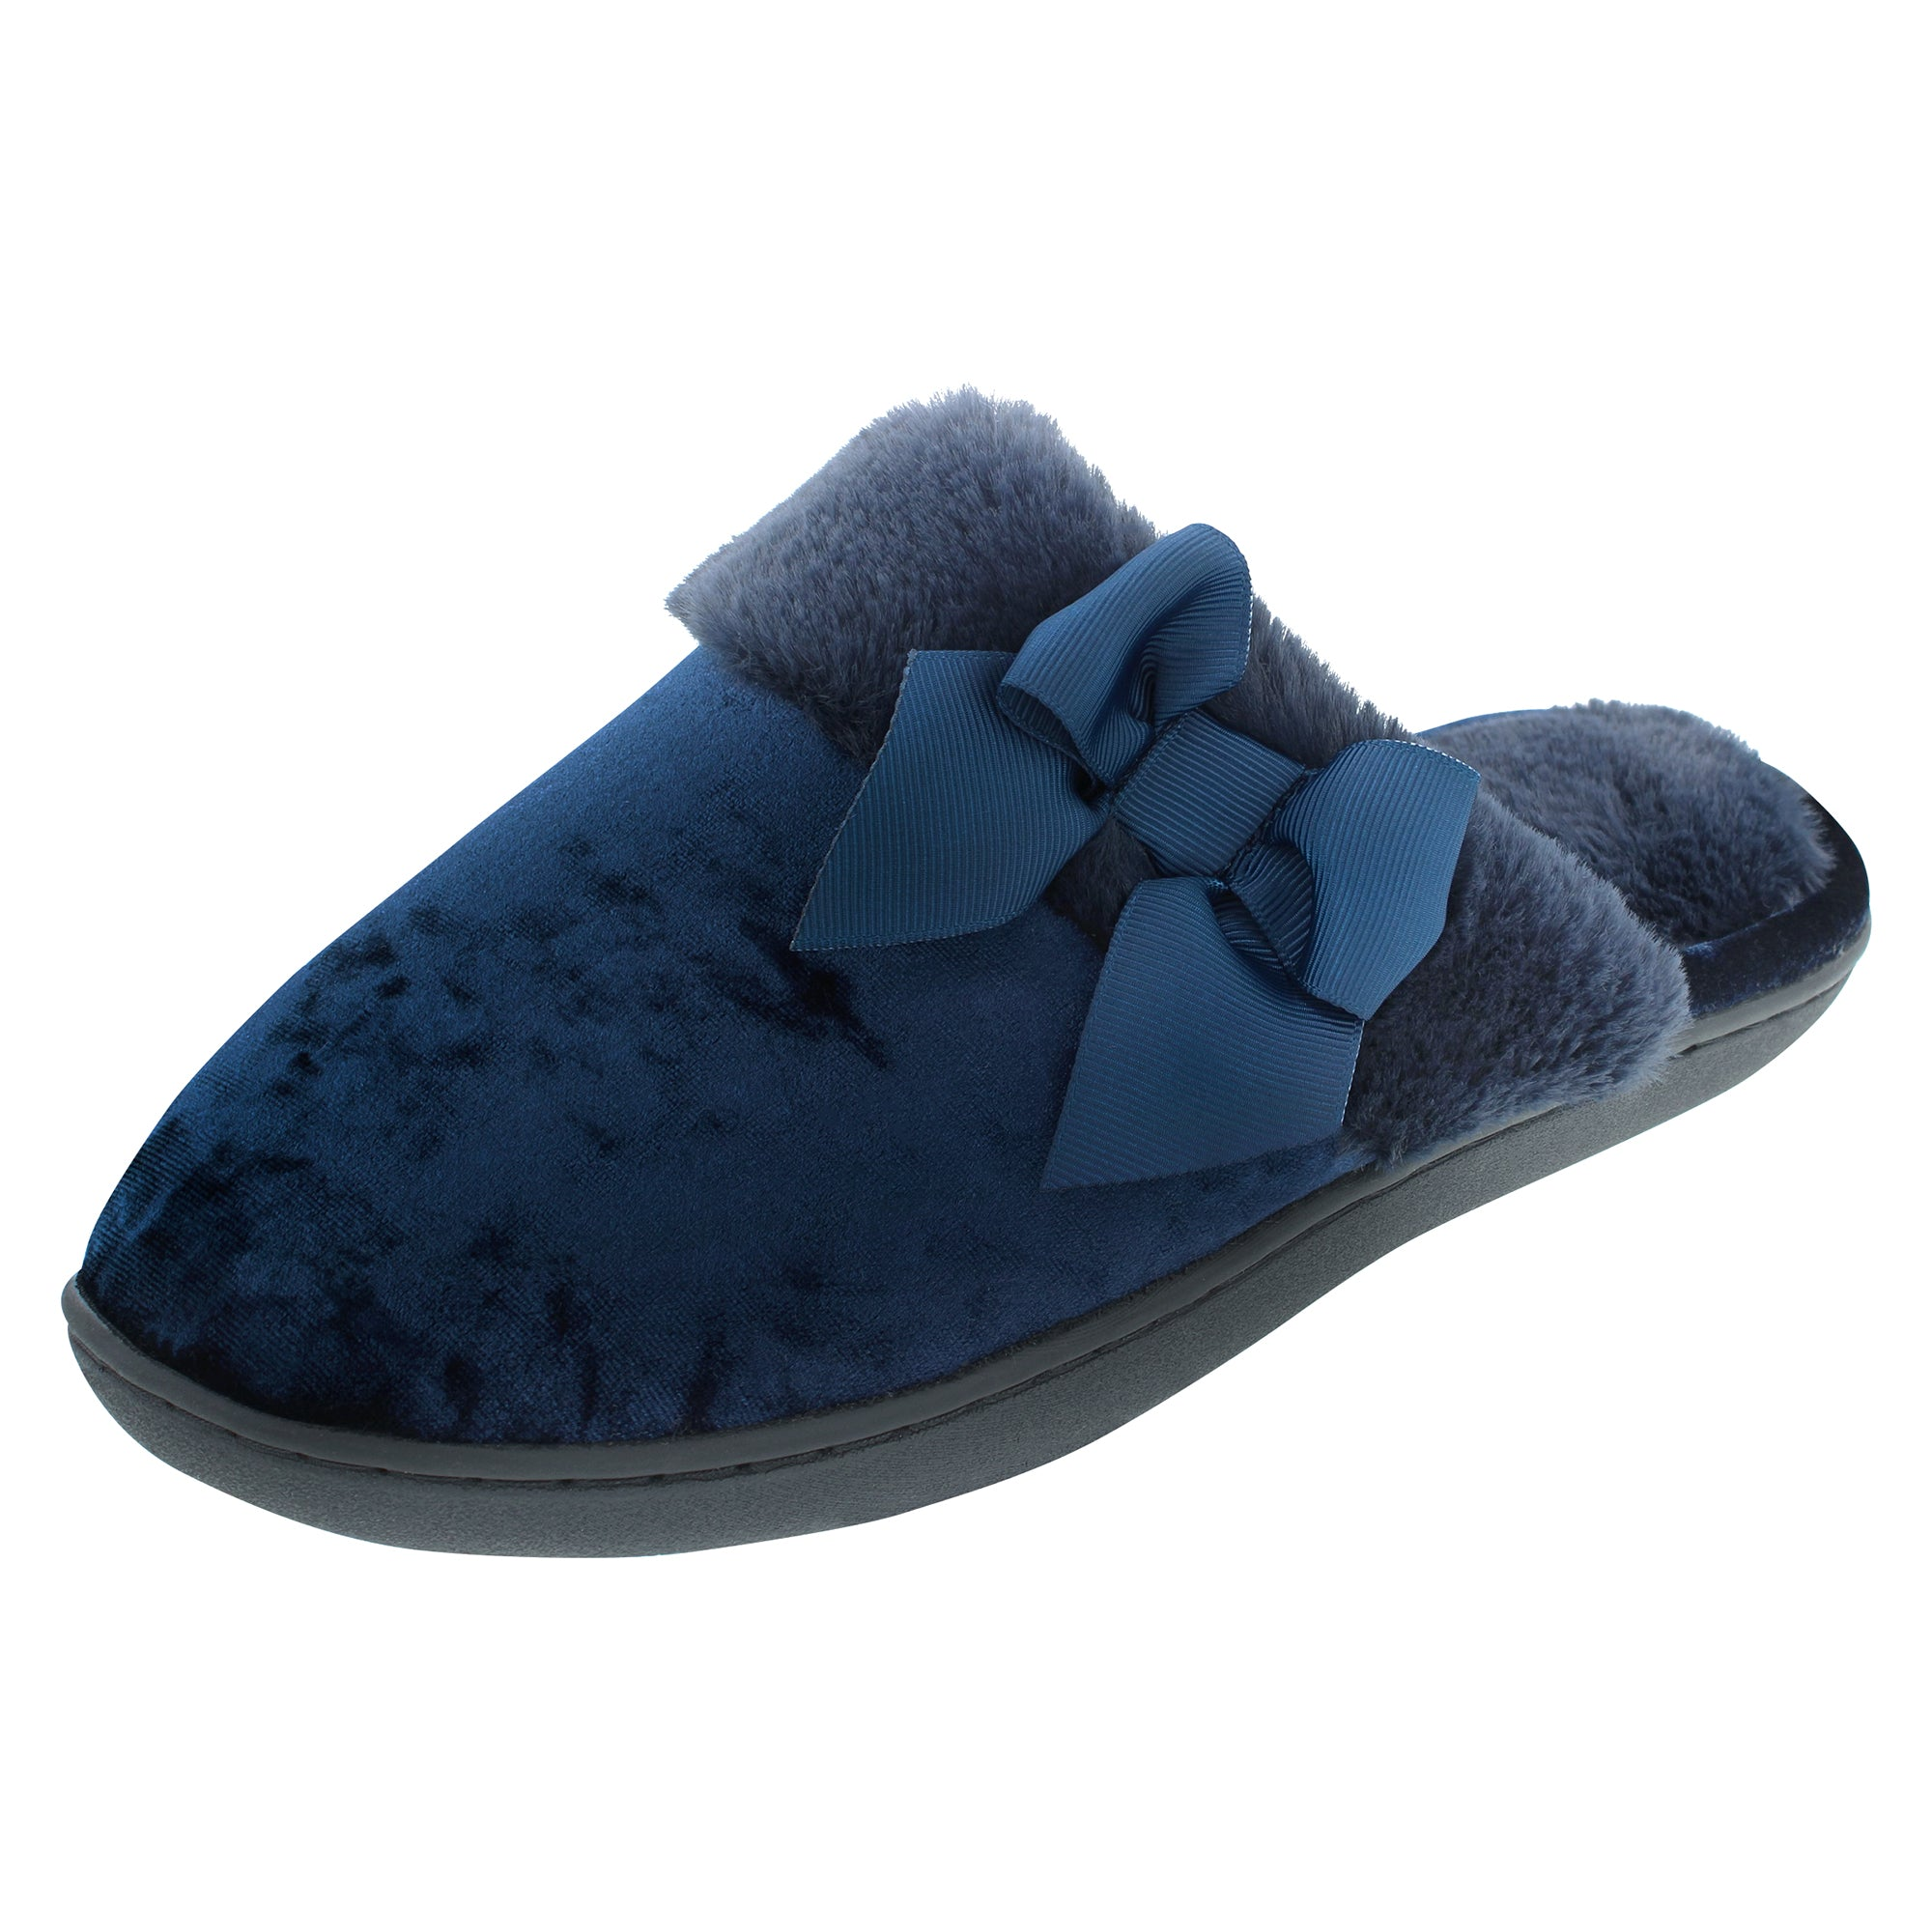 Isotoner Velour Clog with Memory Foam